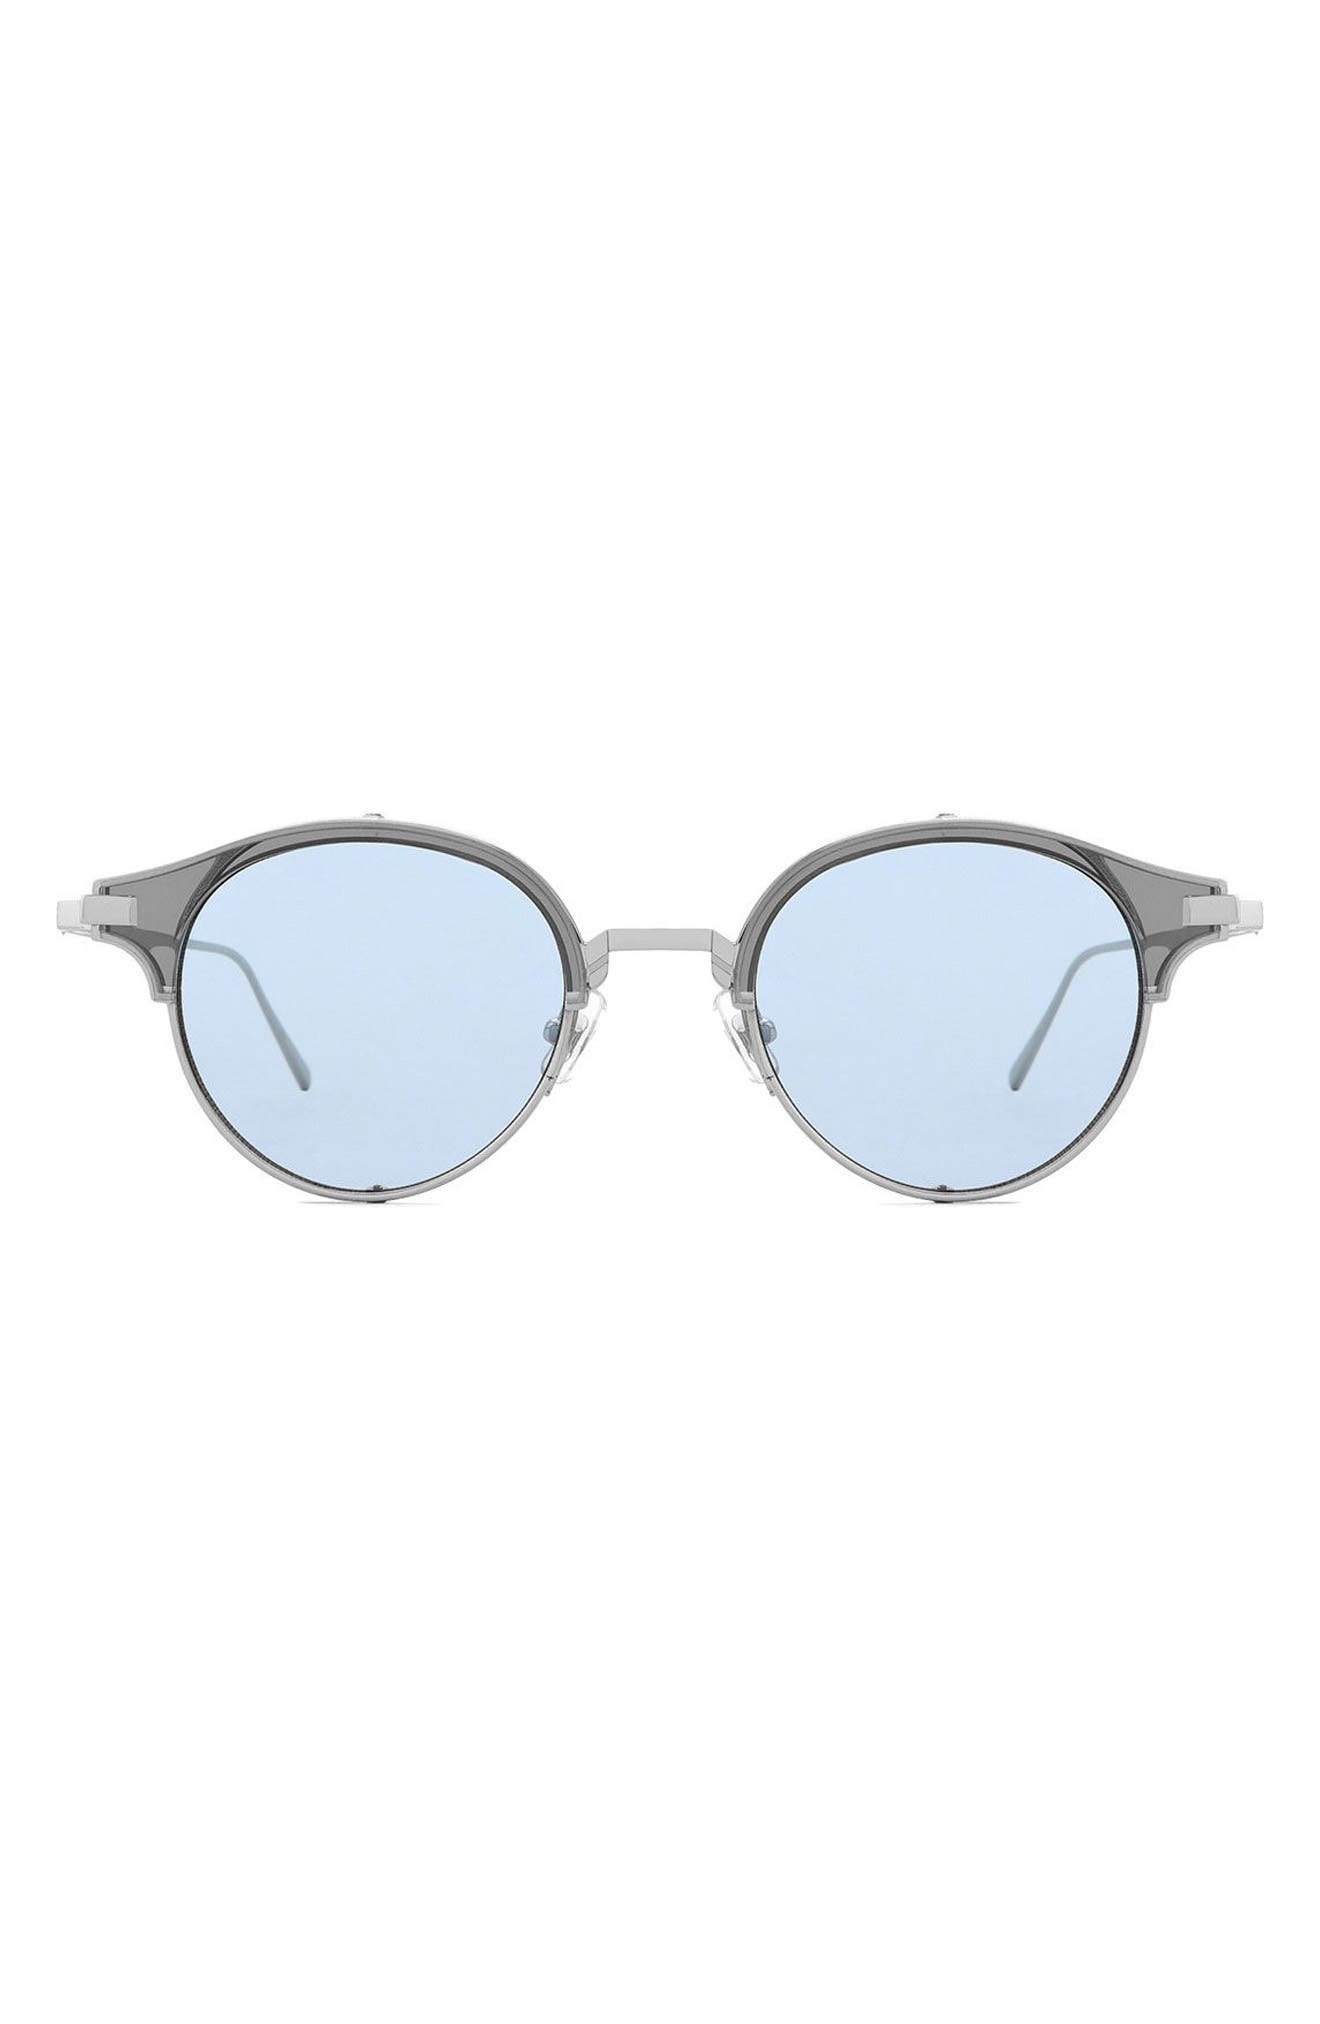 GENTLE MONSTER Double Erok 50mm Cat Eye Sunglasses, Main, color, 040